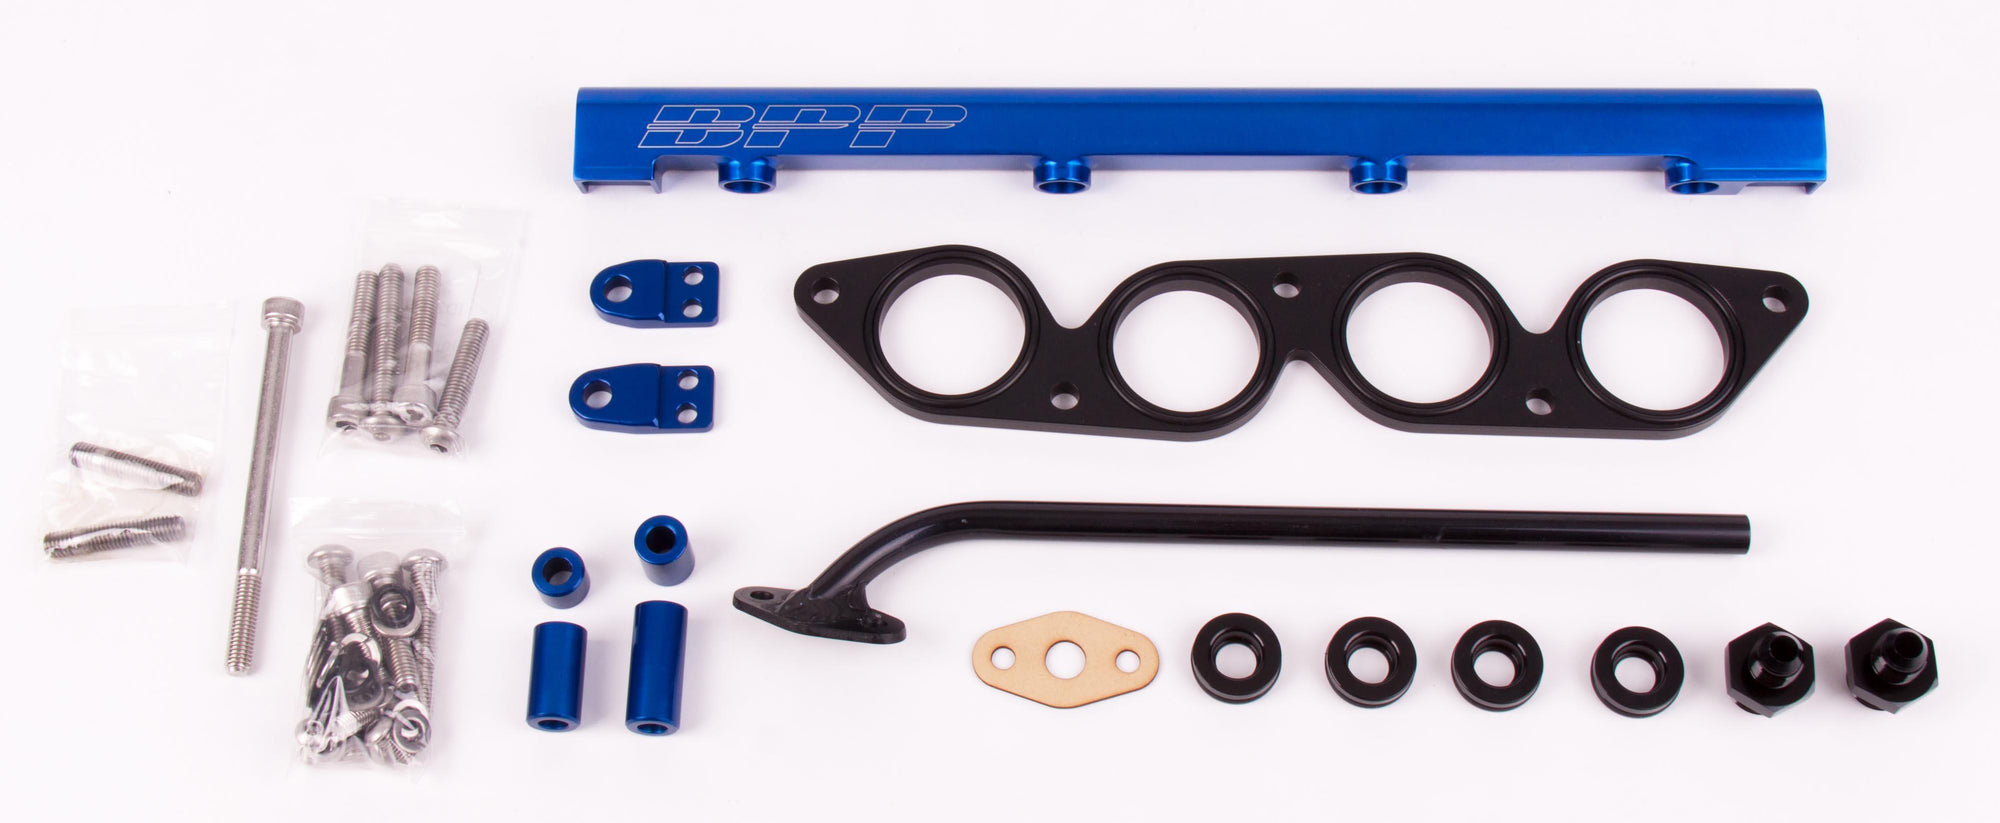 BPP NISSAN SR20DET S14/15 FUEL RAIL KIT